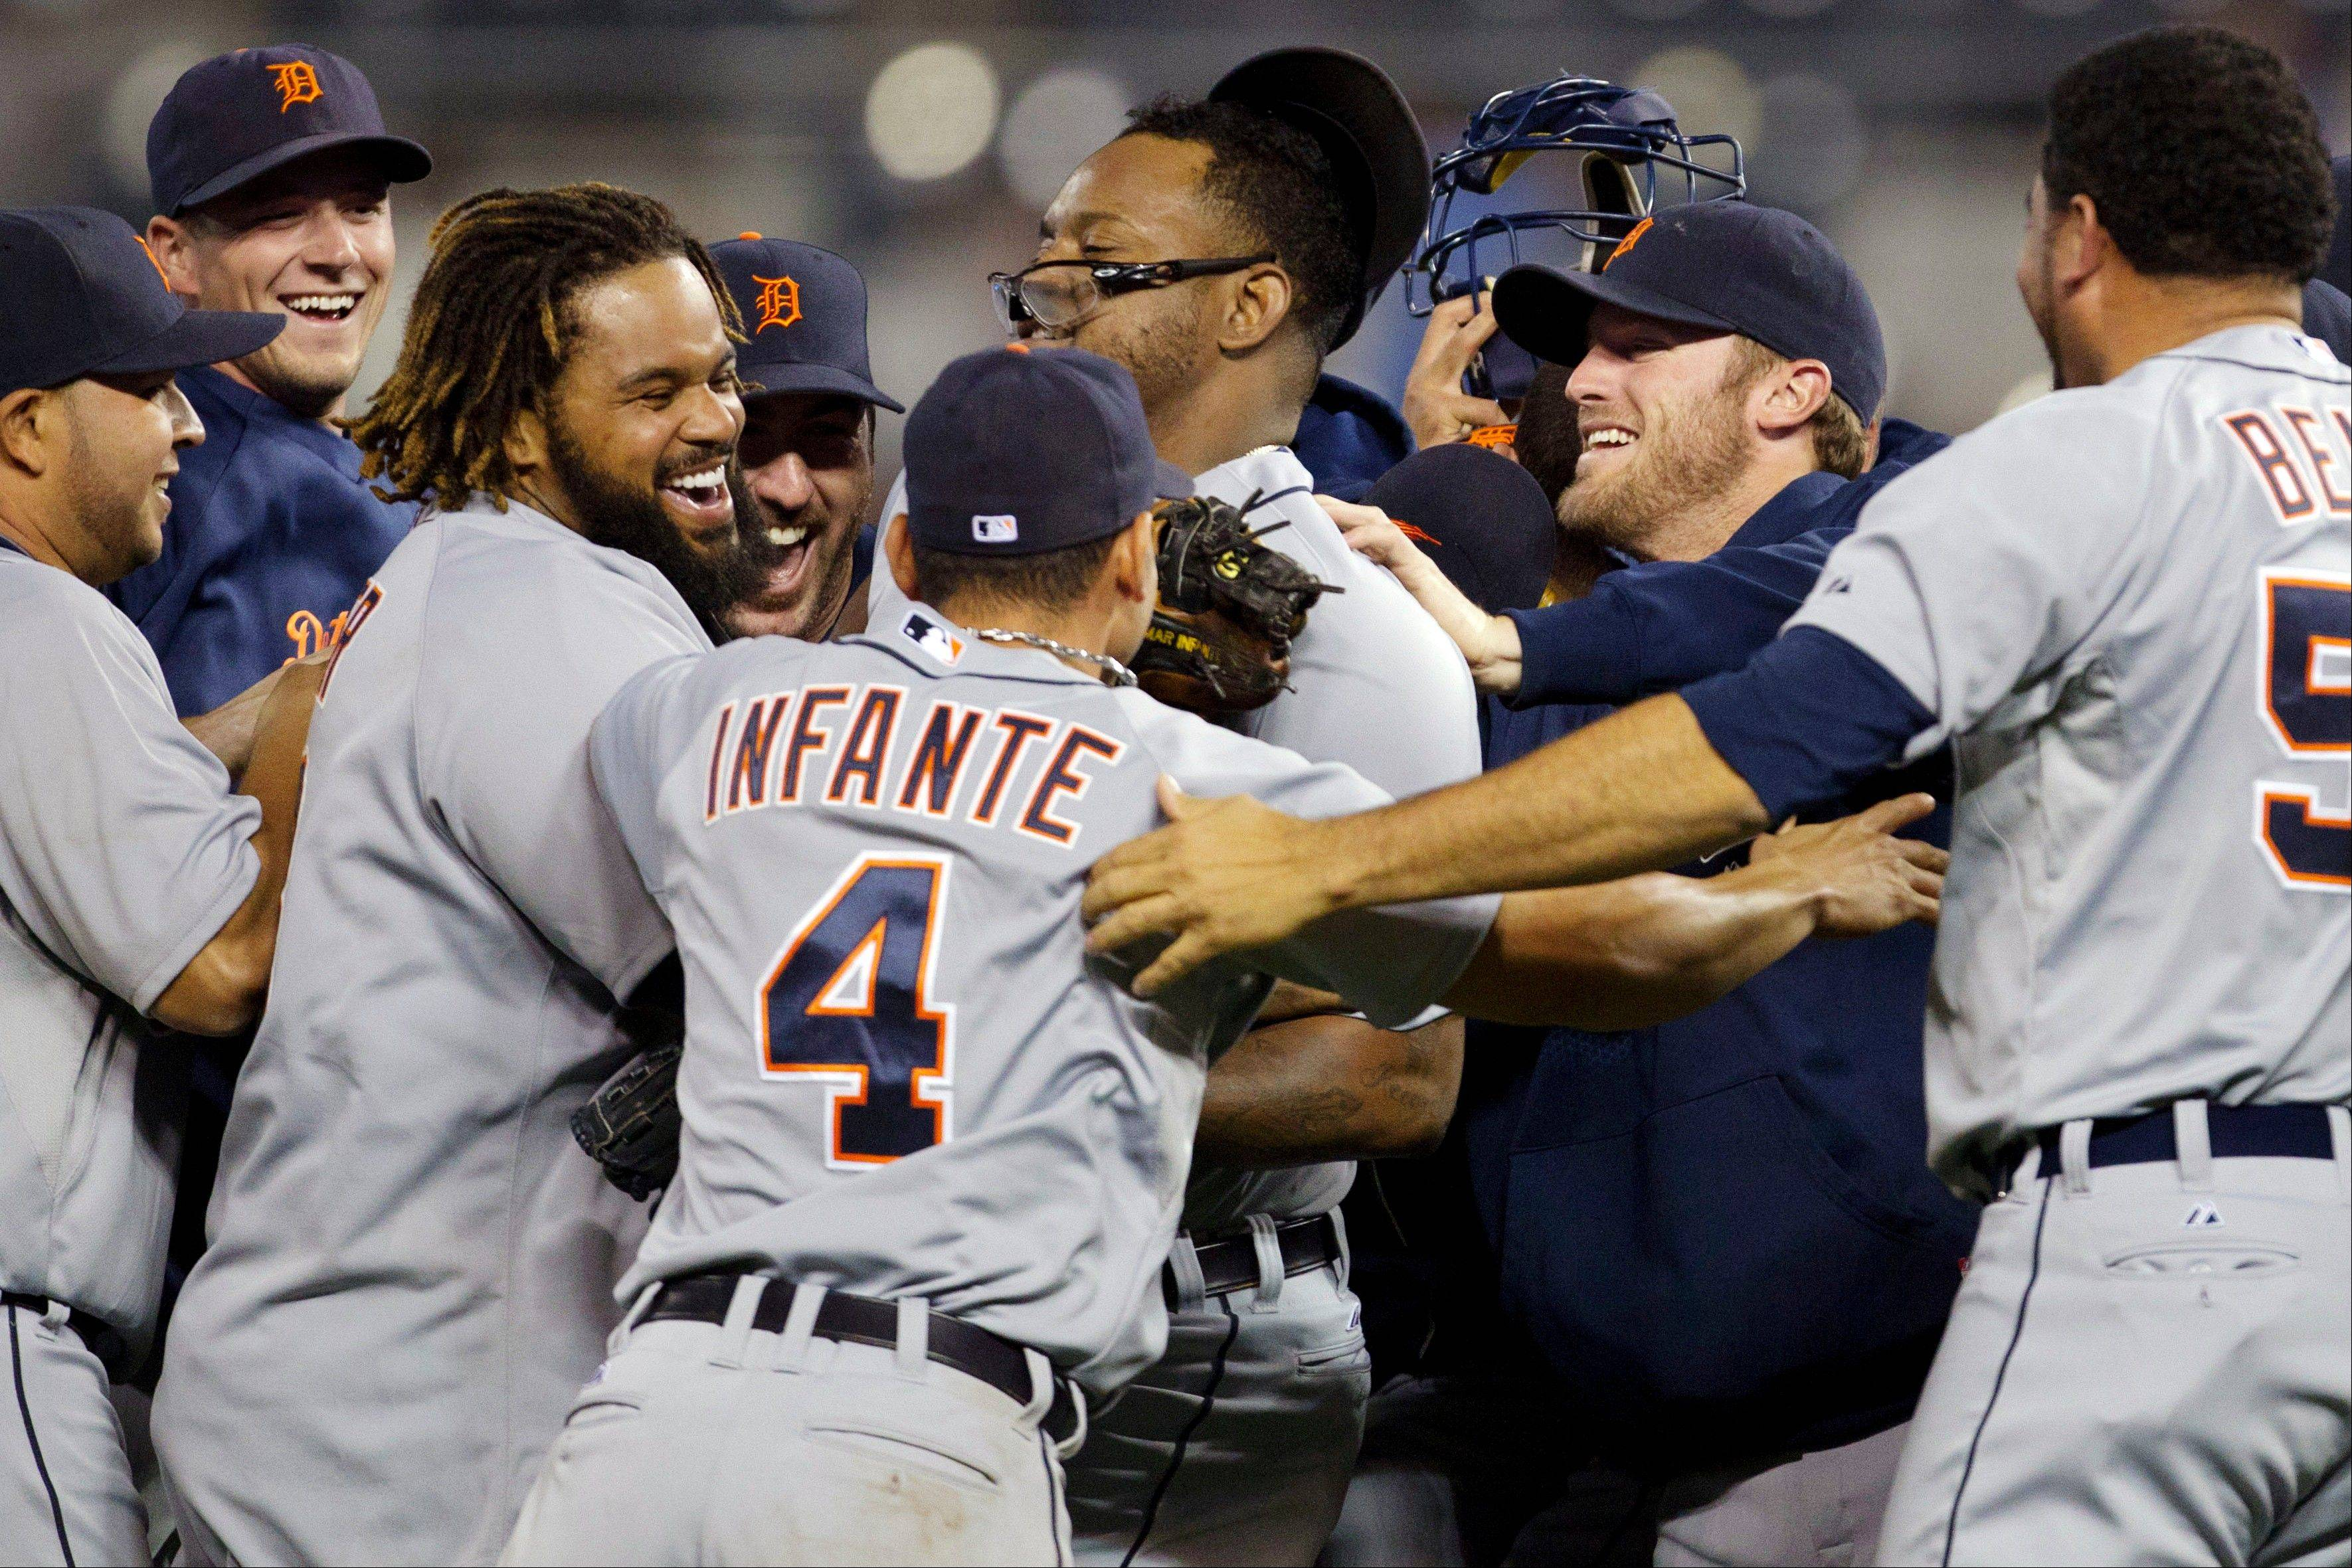 The Detroit Tigers celebrate their road win against the Kansas City Royals that clinched the AL Central crown on Monday.